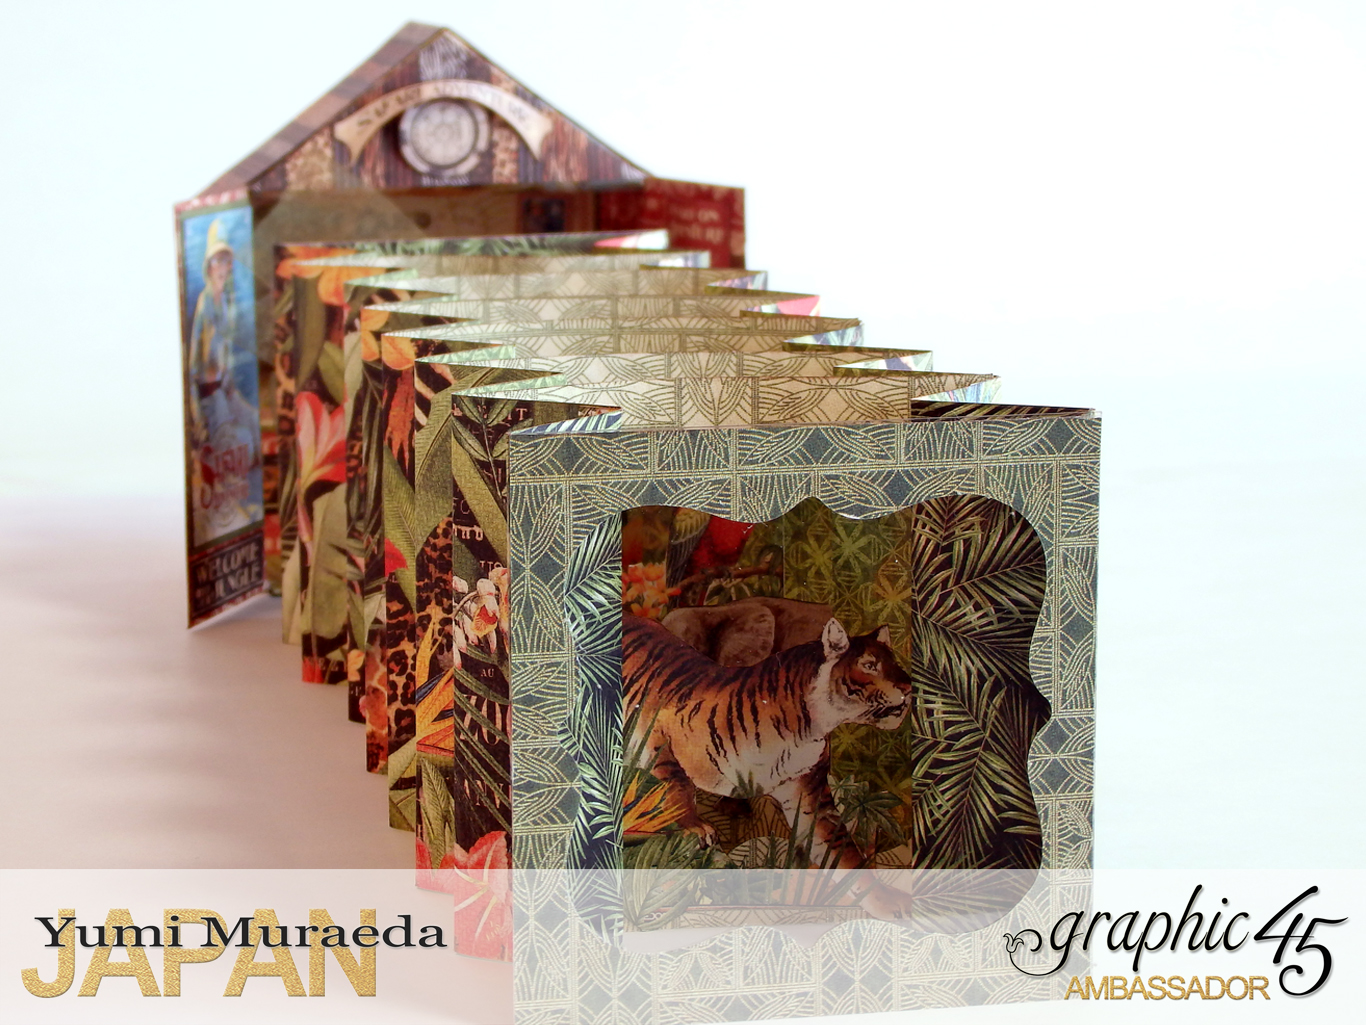 4Safari Park Ranger Office, Safari Adventure, by Yumi Muraeda, Product by Graphic 45jpg